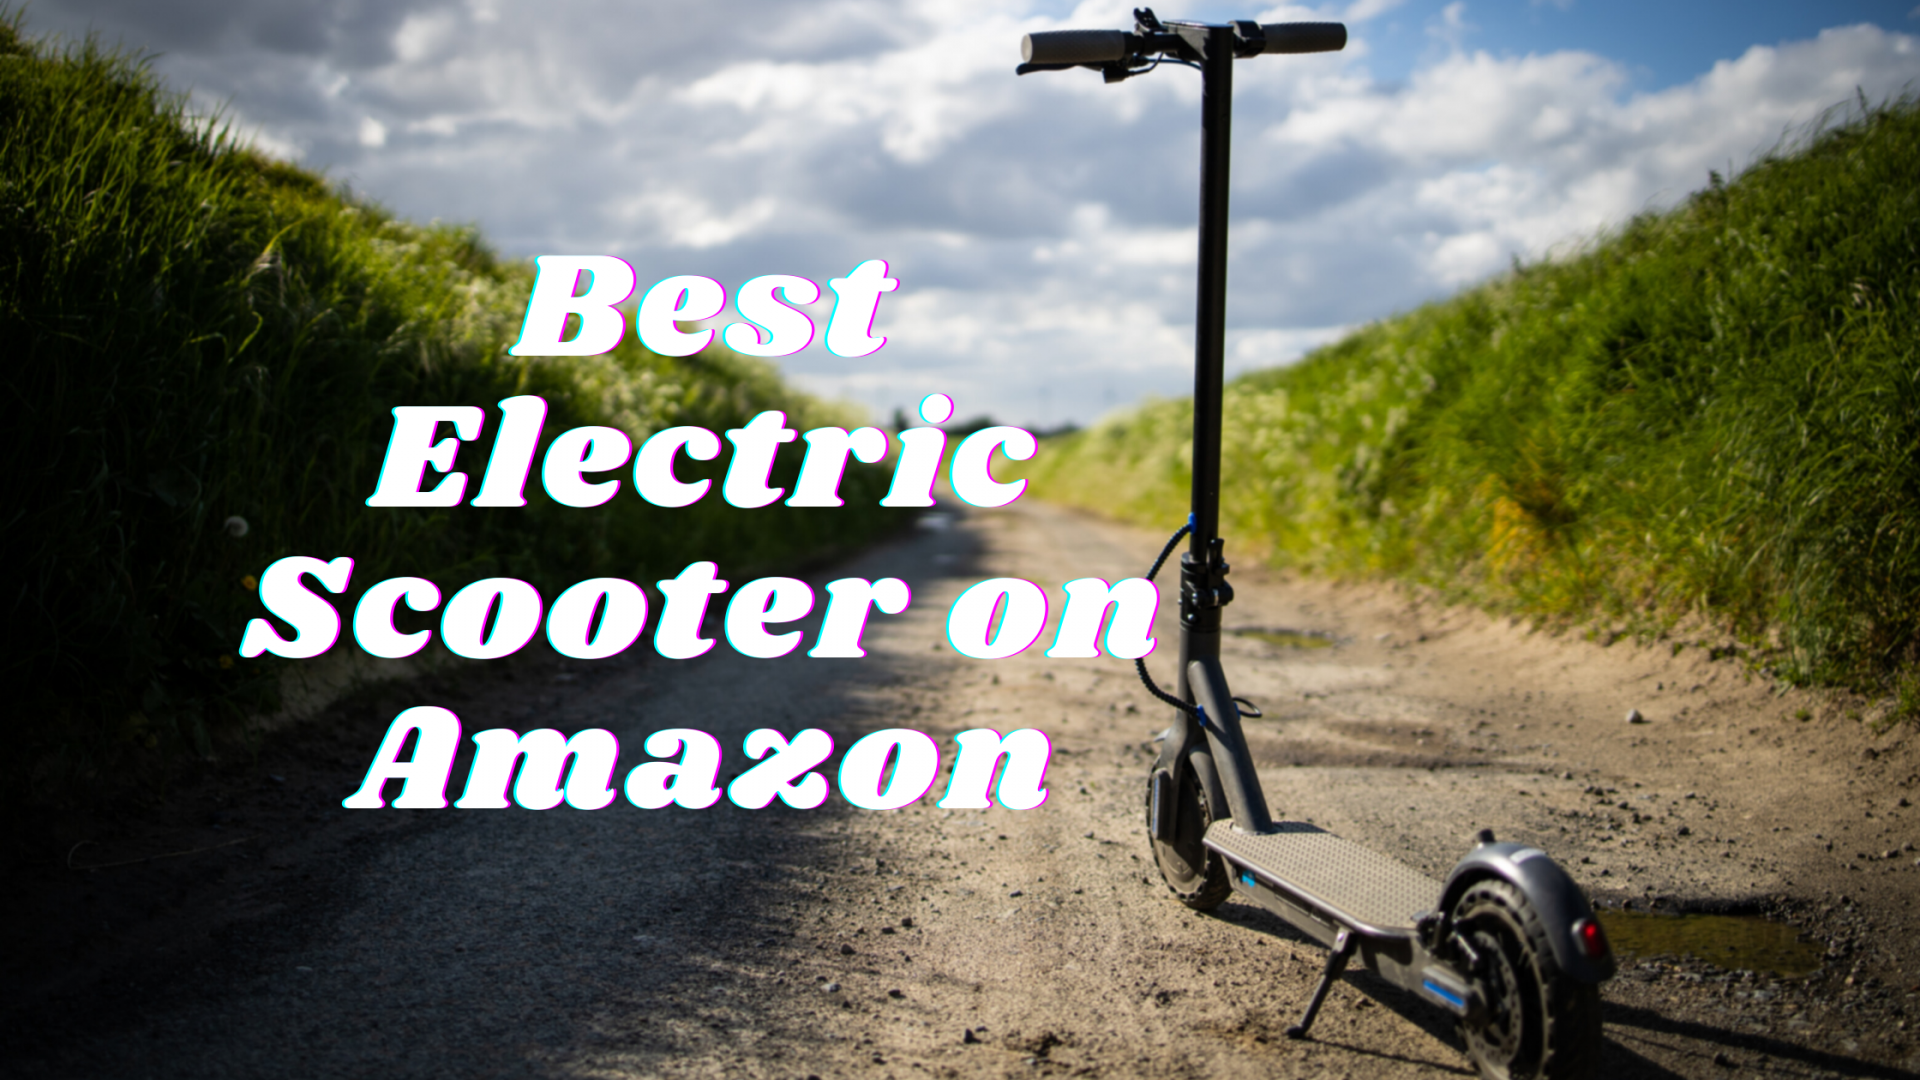 Best Electric Scooter on Amazon